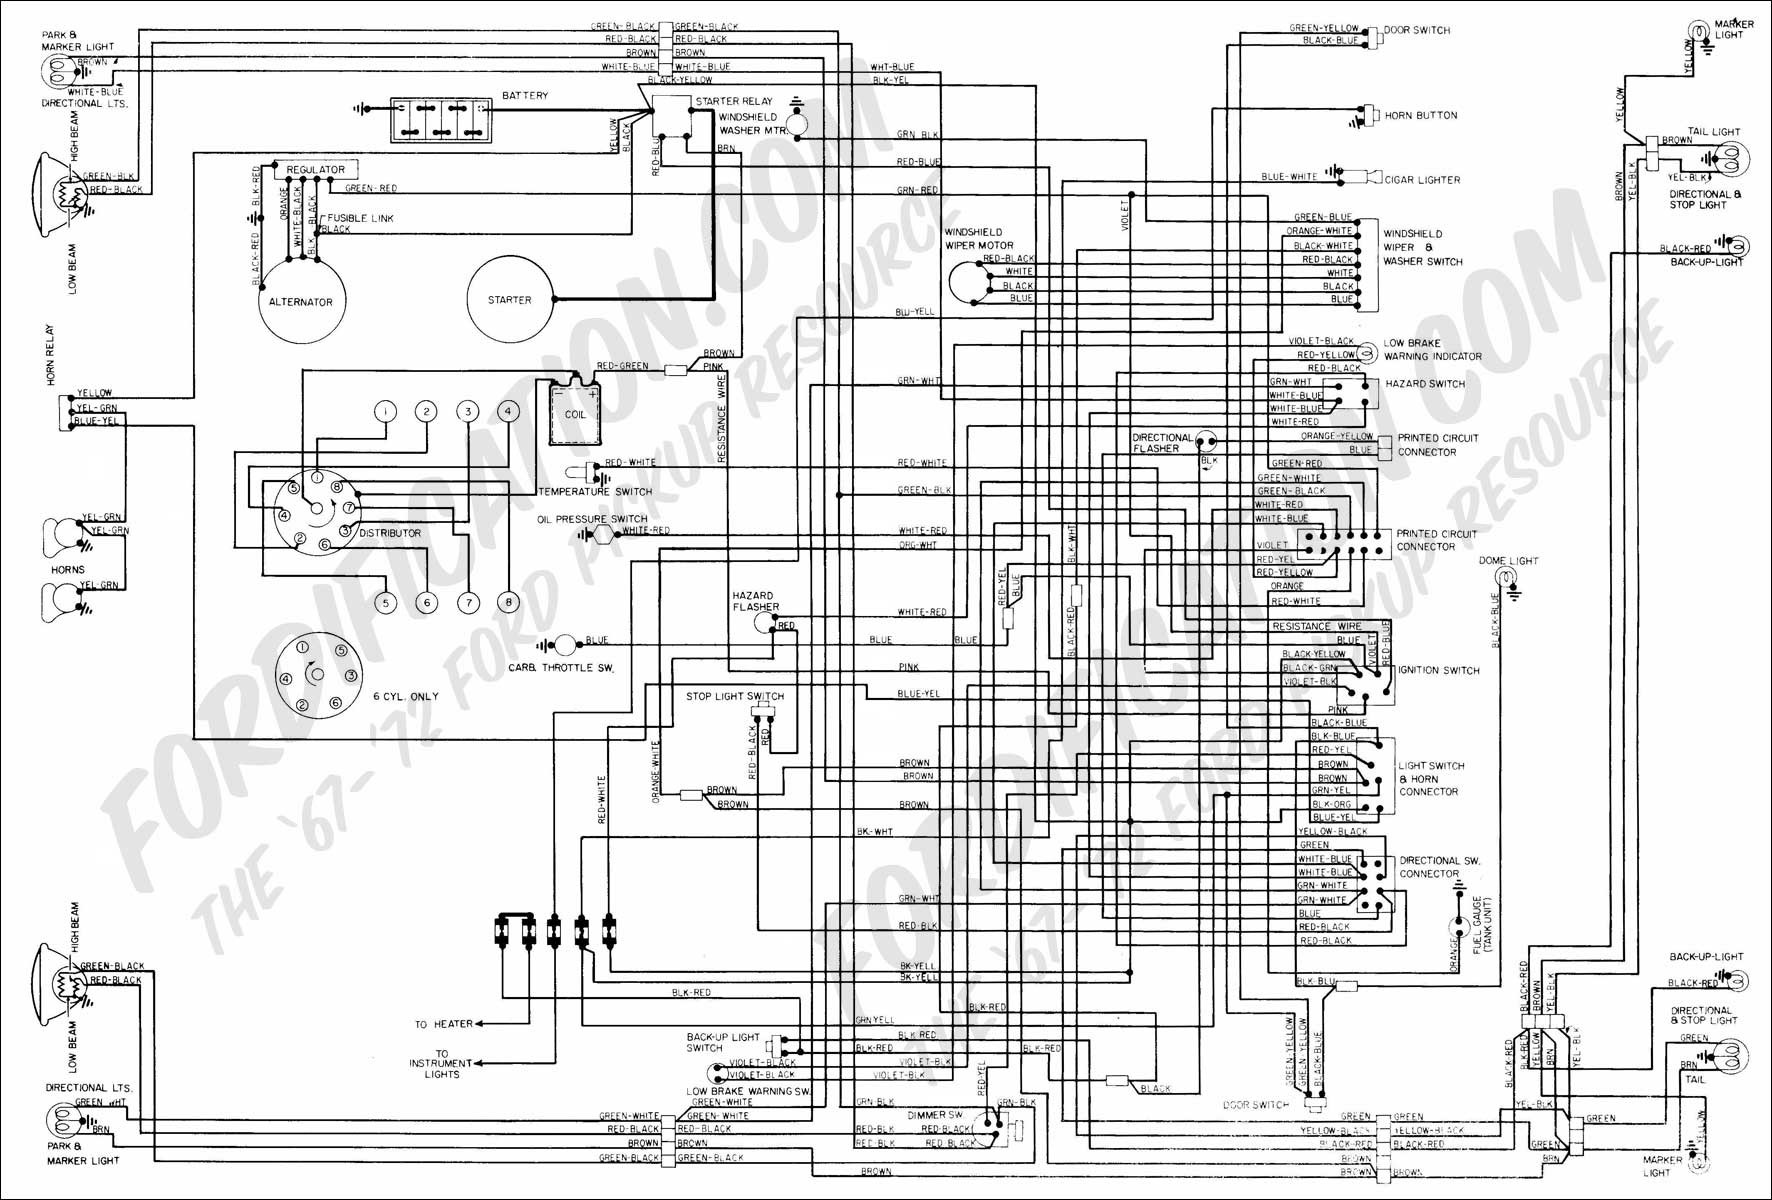 2002 ford Explorer Engine Diagram 4 0 ford F350 Wiring Diagram 5 Lenito Of 2002  ford